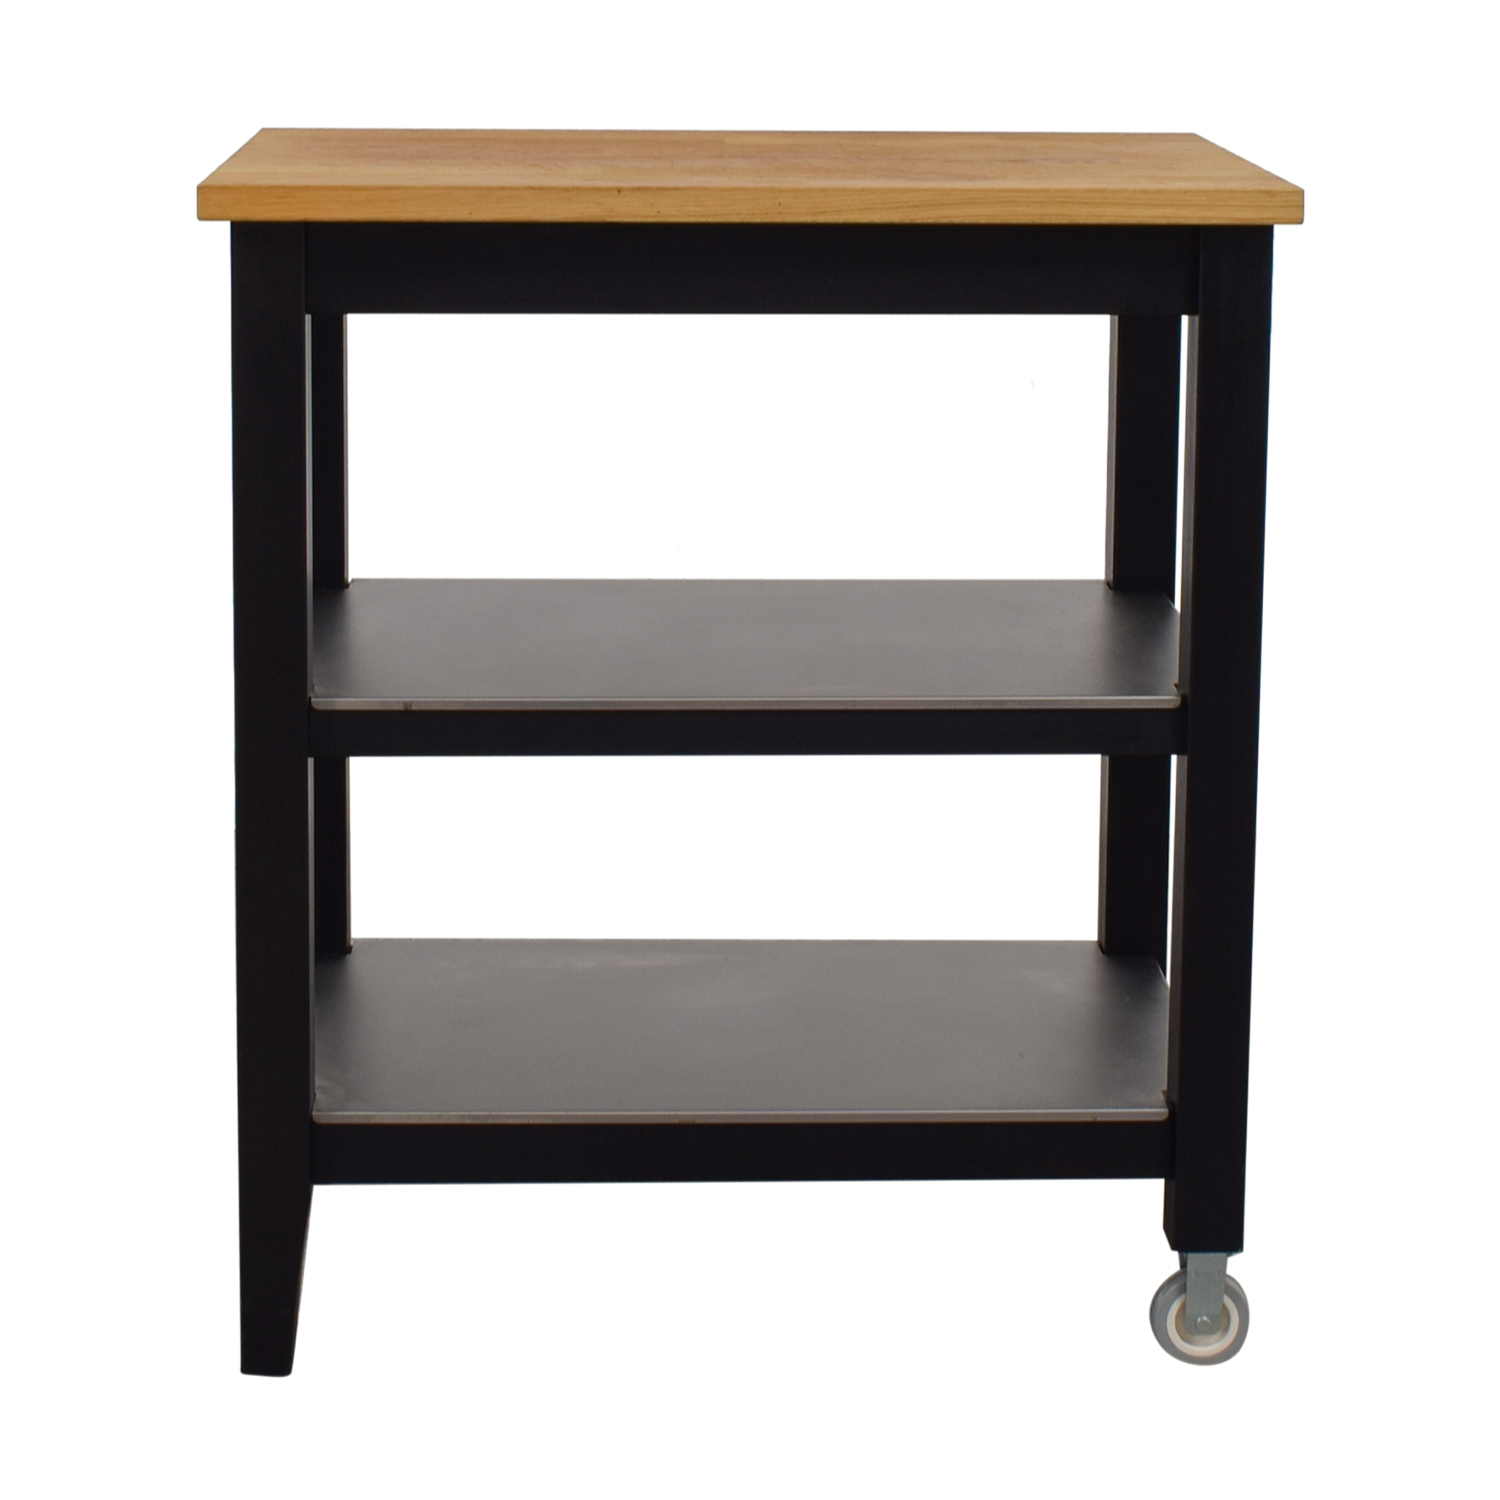 57 Off Ikea Ikea Stenstorp Wood And Black Kitchen Island Cart